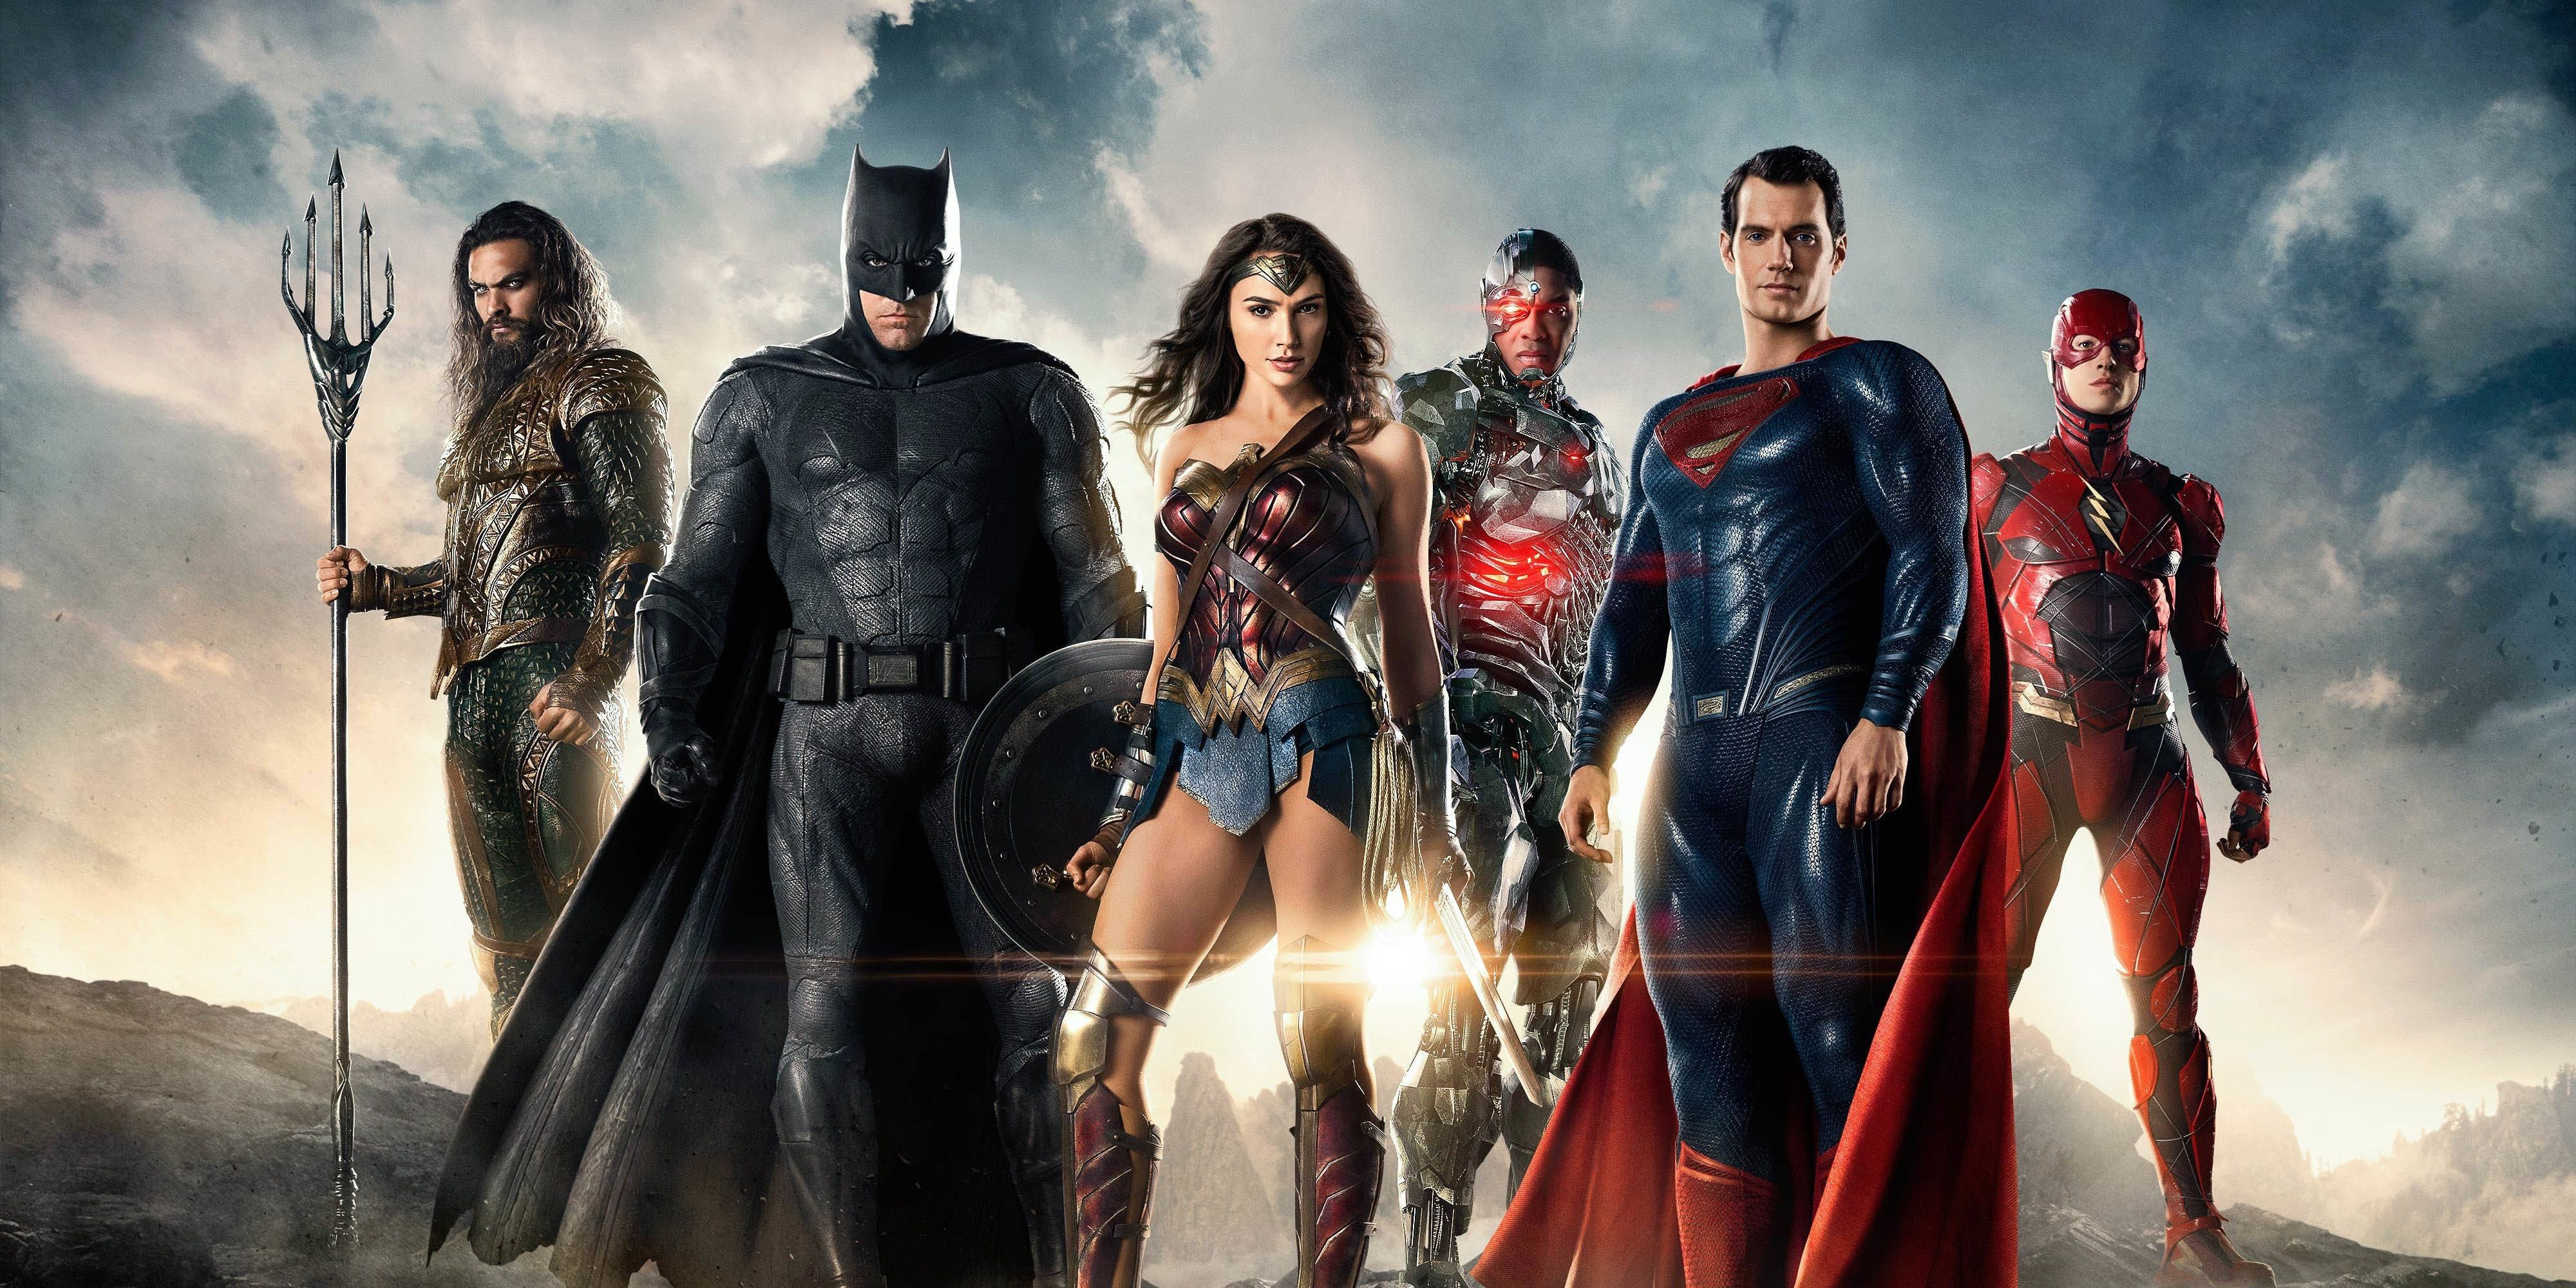 Watch Justice League 2017 Full Online Hd Movie Streaming Free Download Watch Justice League Justice League 2017 Justice League Full Movie New Justice League